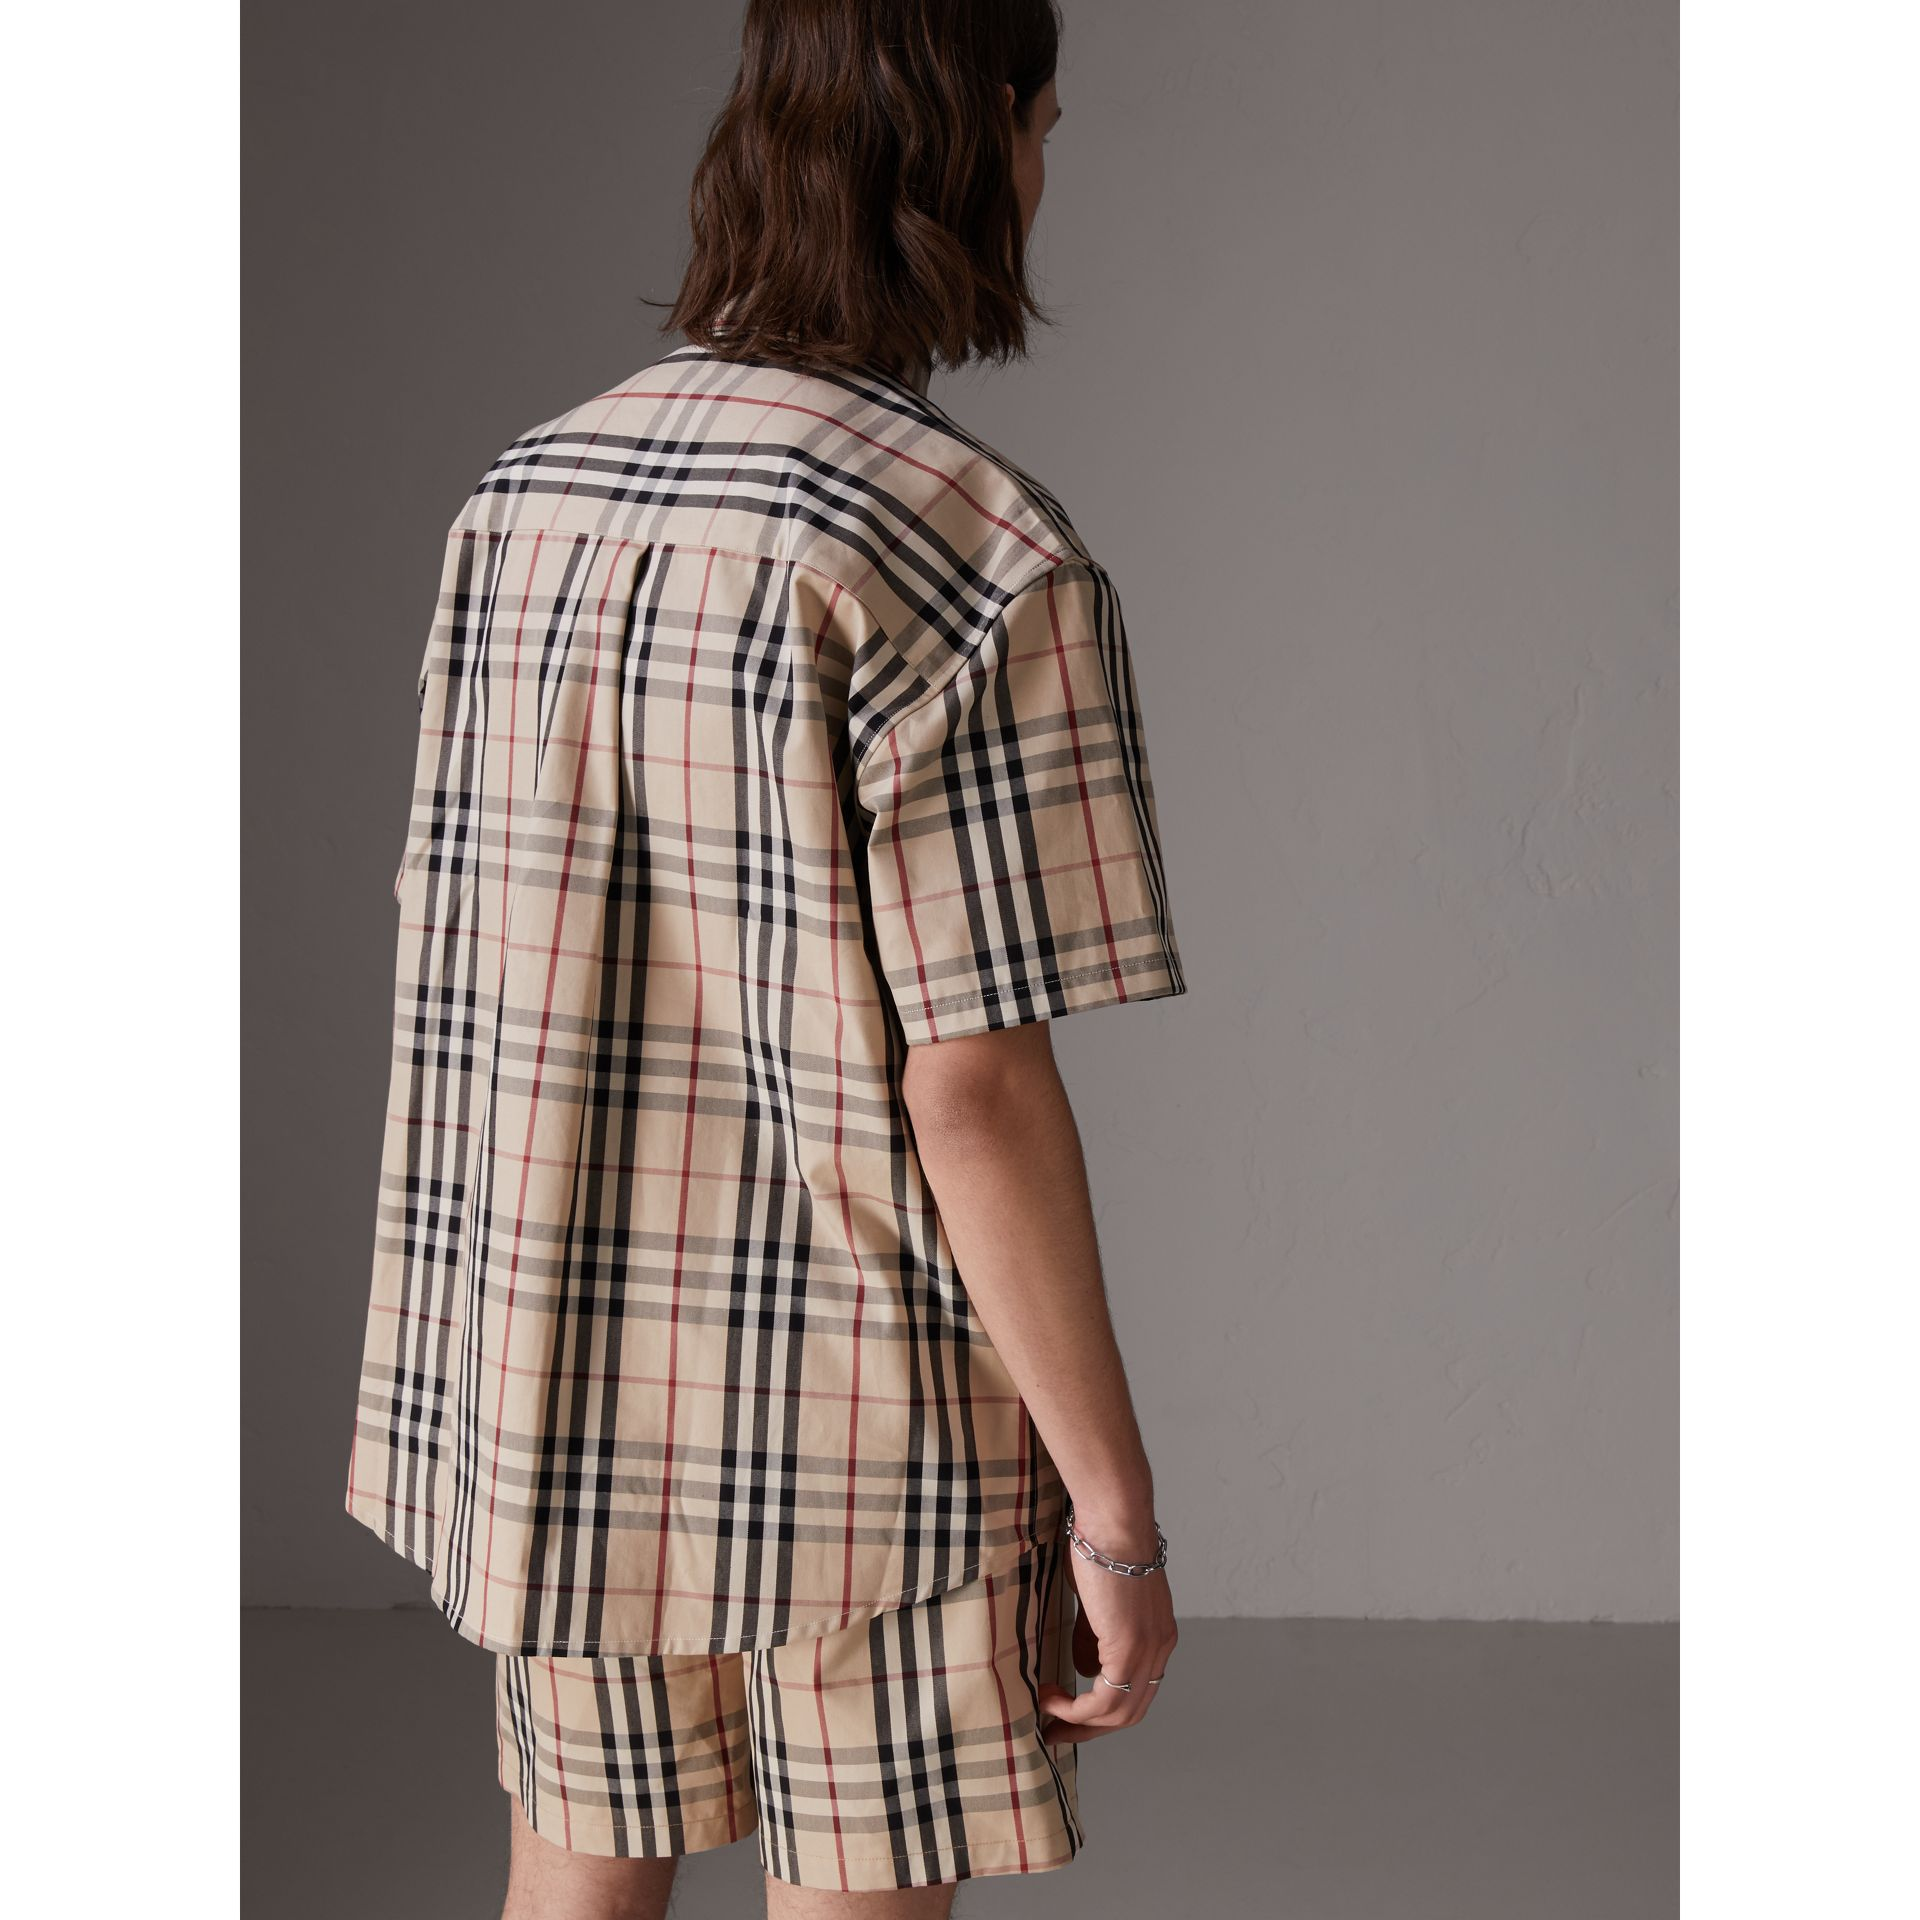 Gosha x Burberry Short-sleeve Check Shirt in Honey | Burberry - gallery image 5